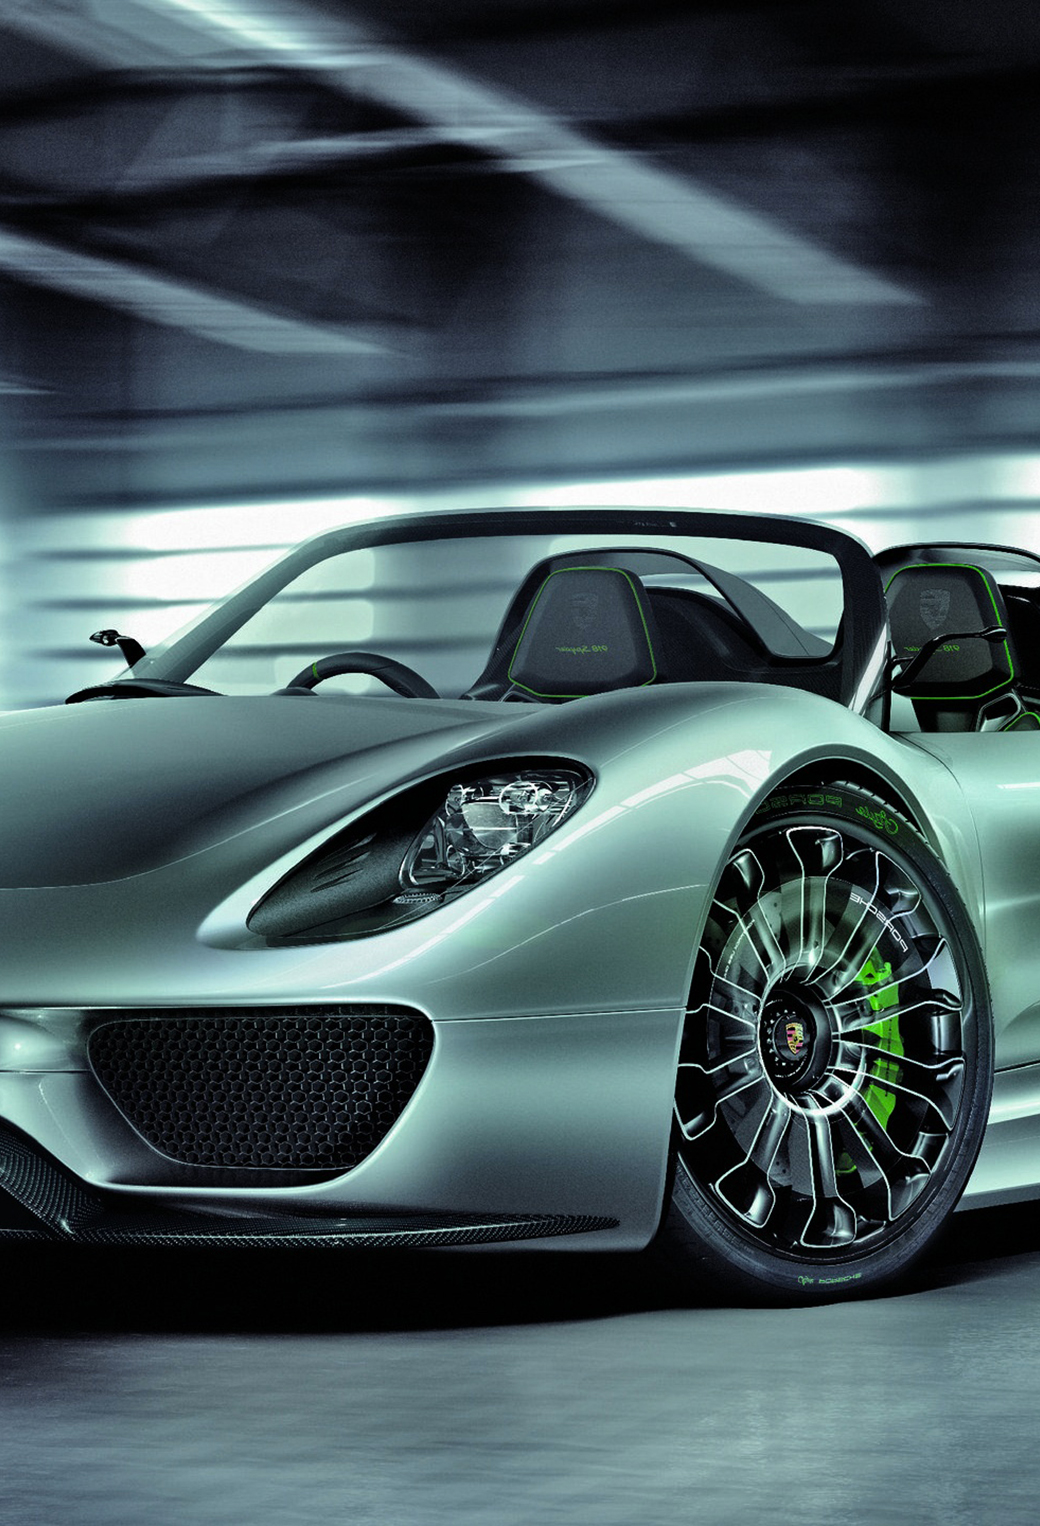 Porsche 918 Spyder 3Wallpapers iPhone parallax Porsche 918 Spyder